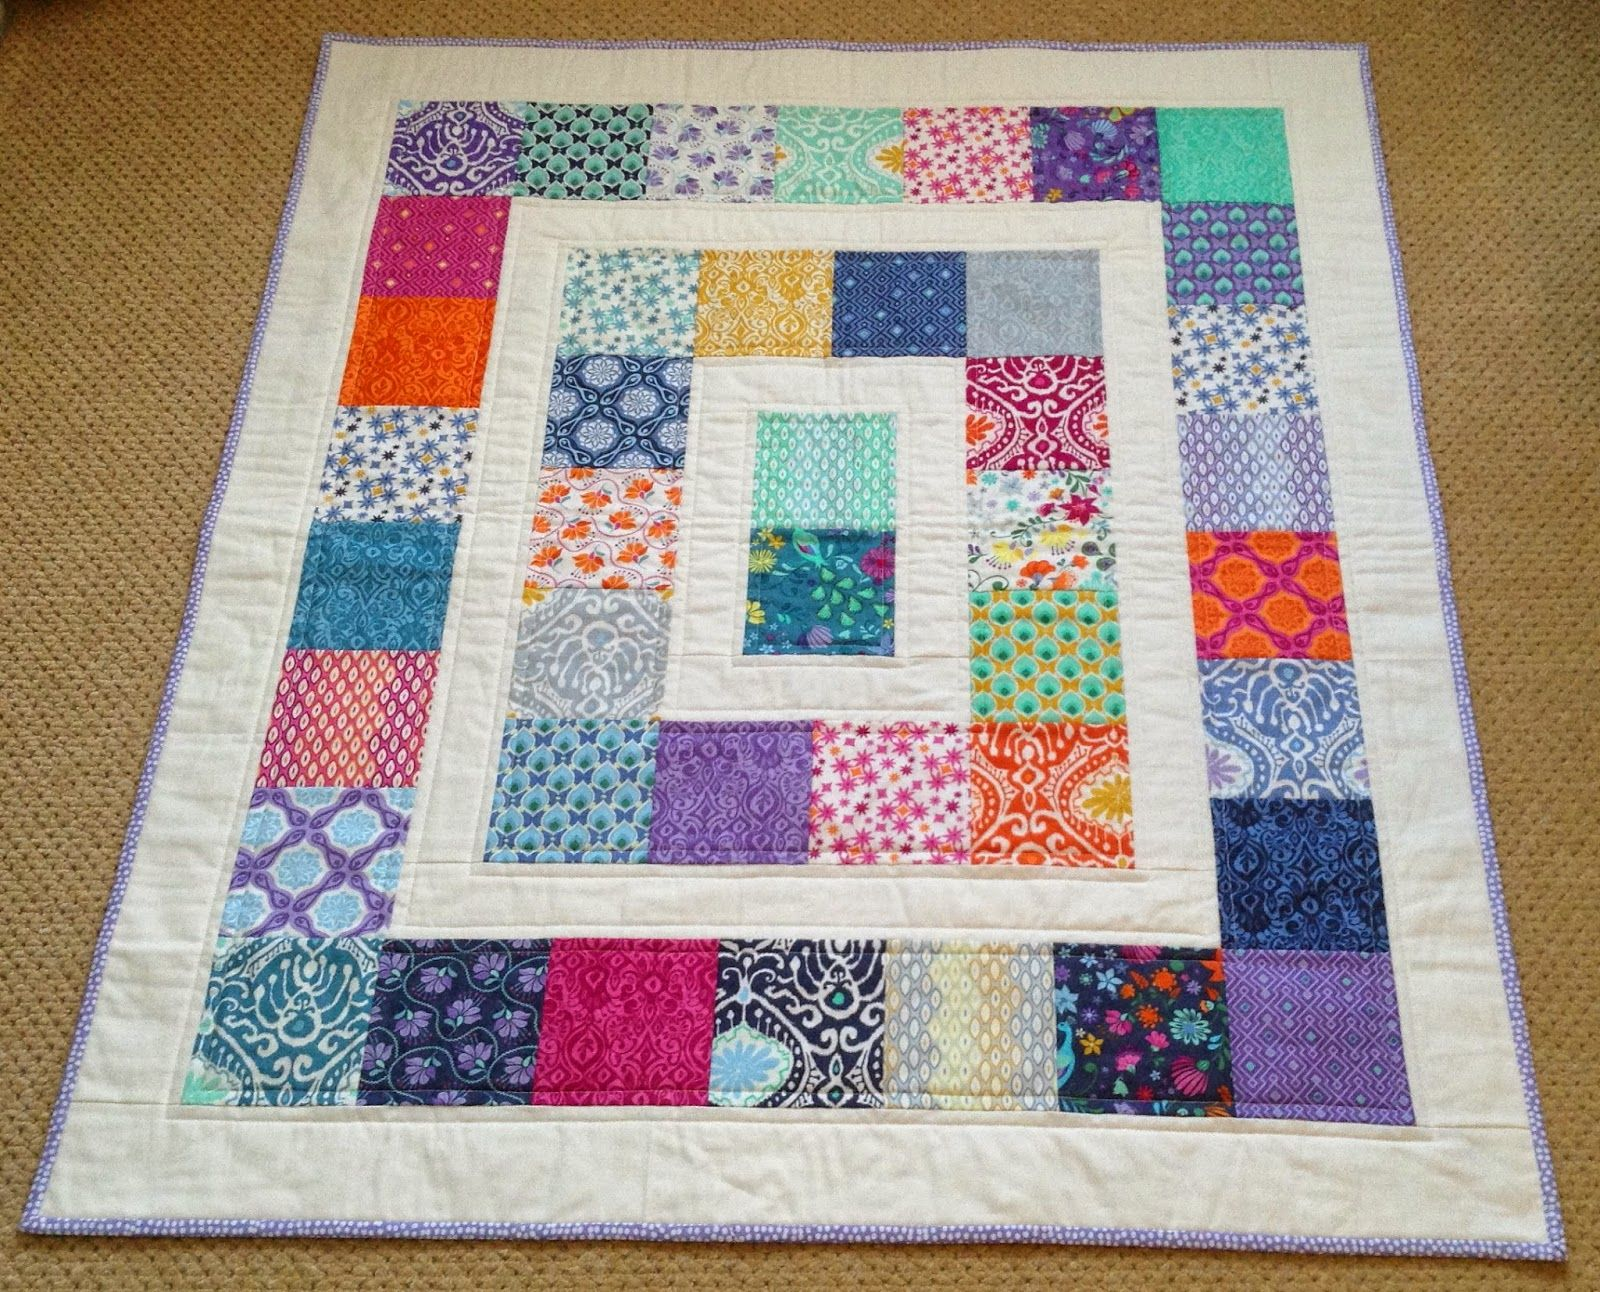 Charm Pack Quilt Charm Square Quilt Charm Pack Baby Quilt Charm Pack Quilt Patterns